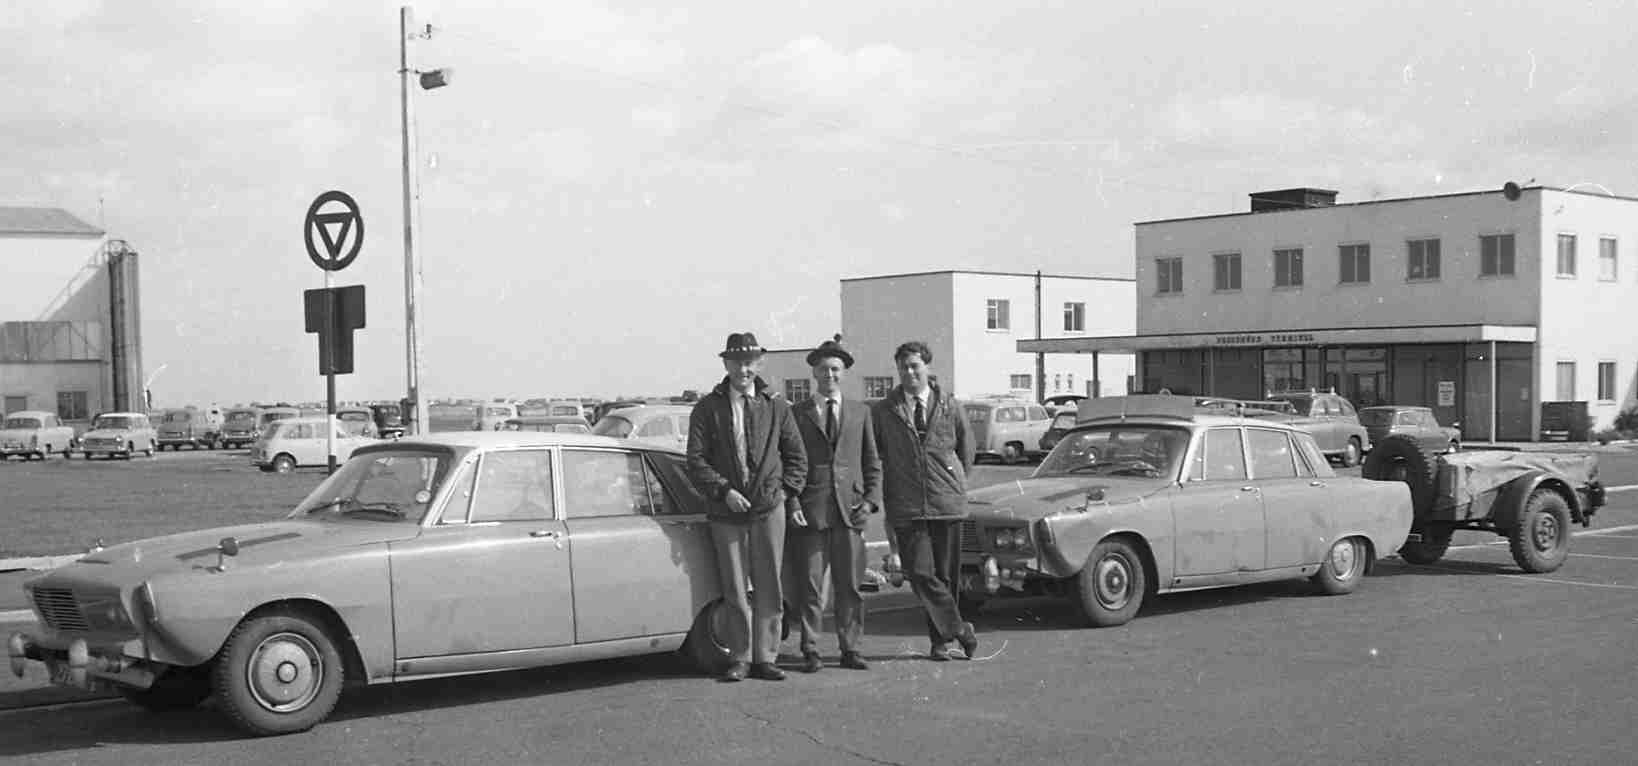 Rover P7/1 and P7/2